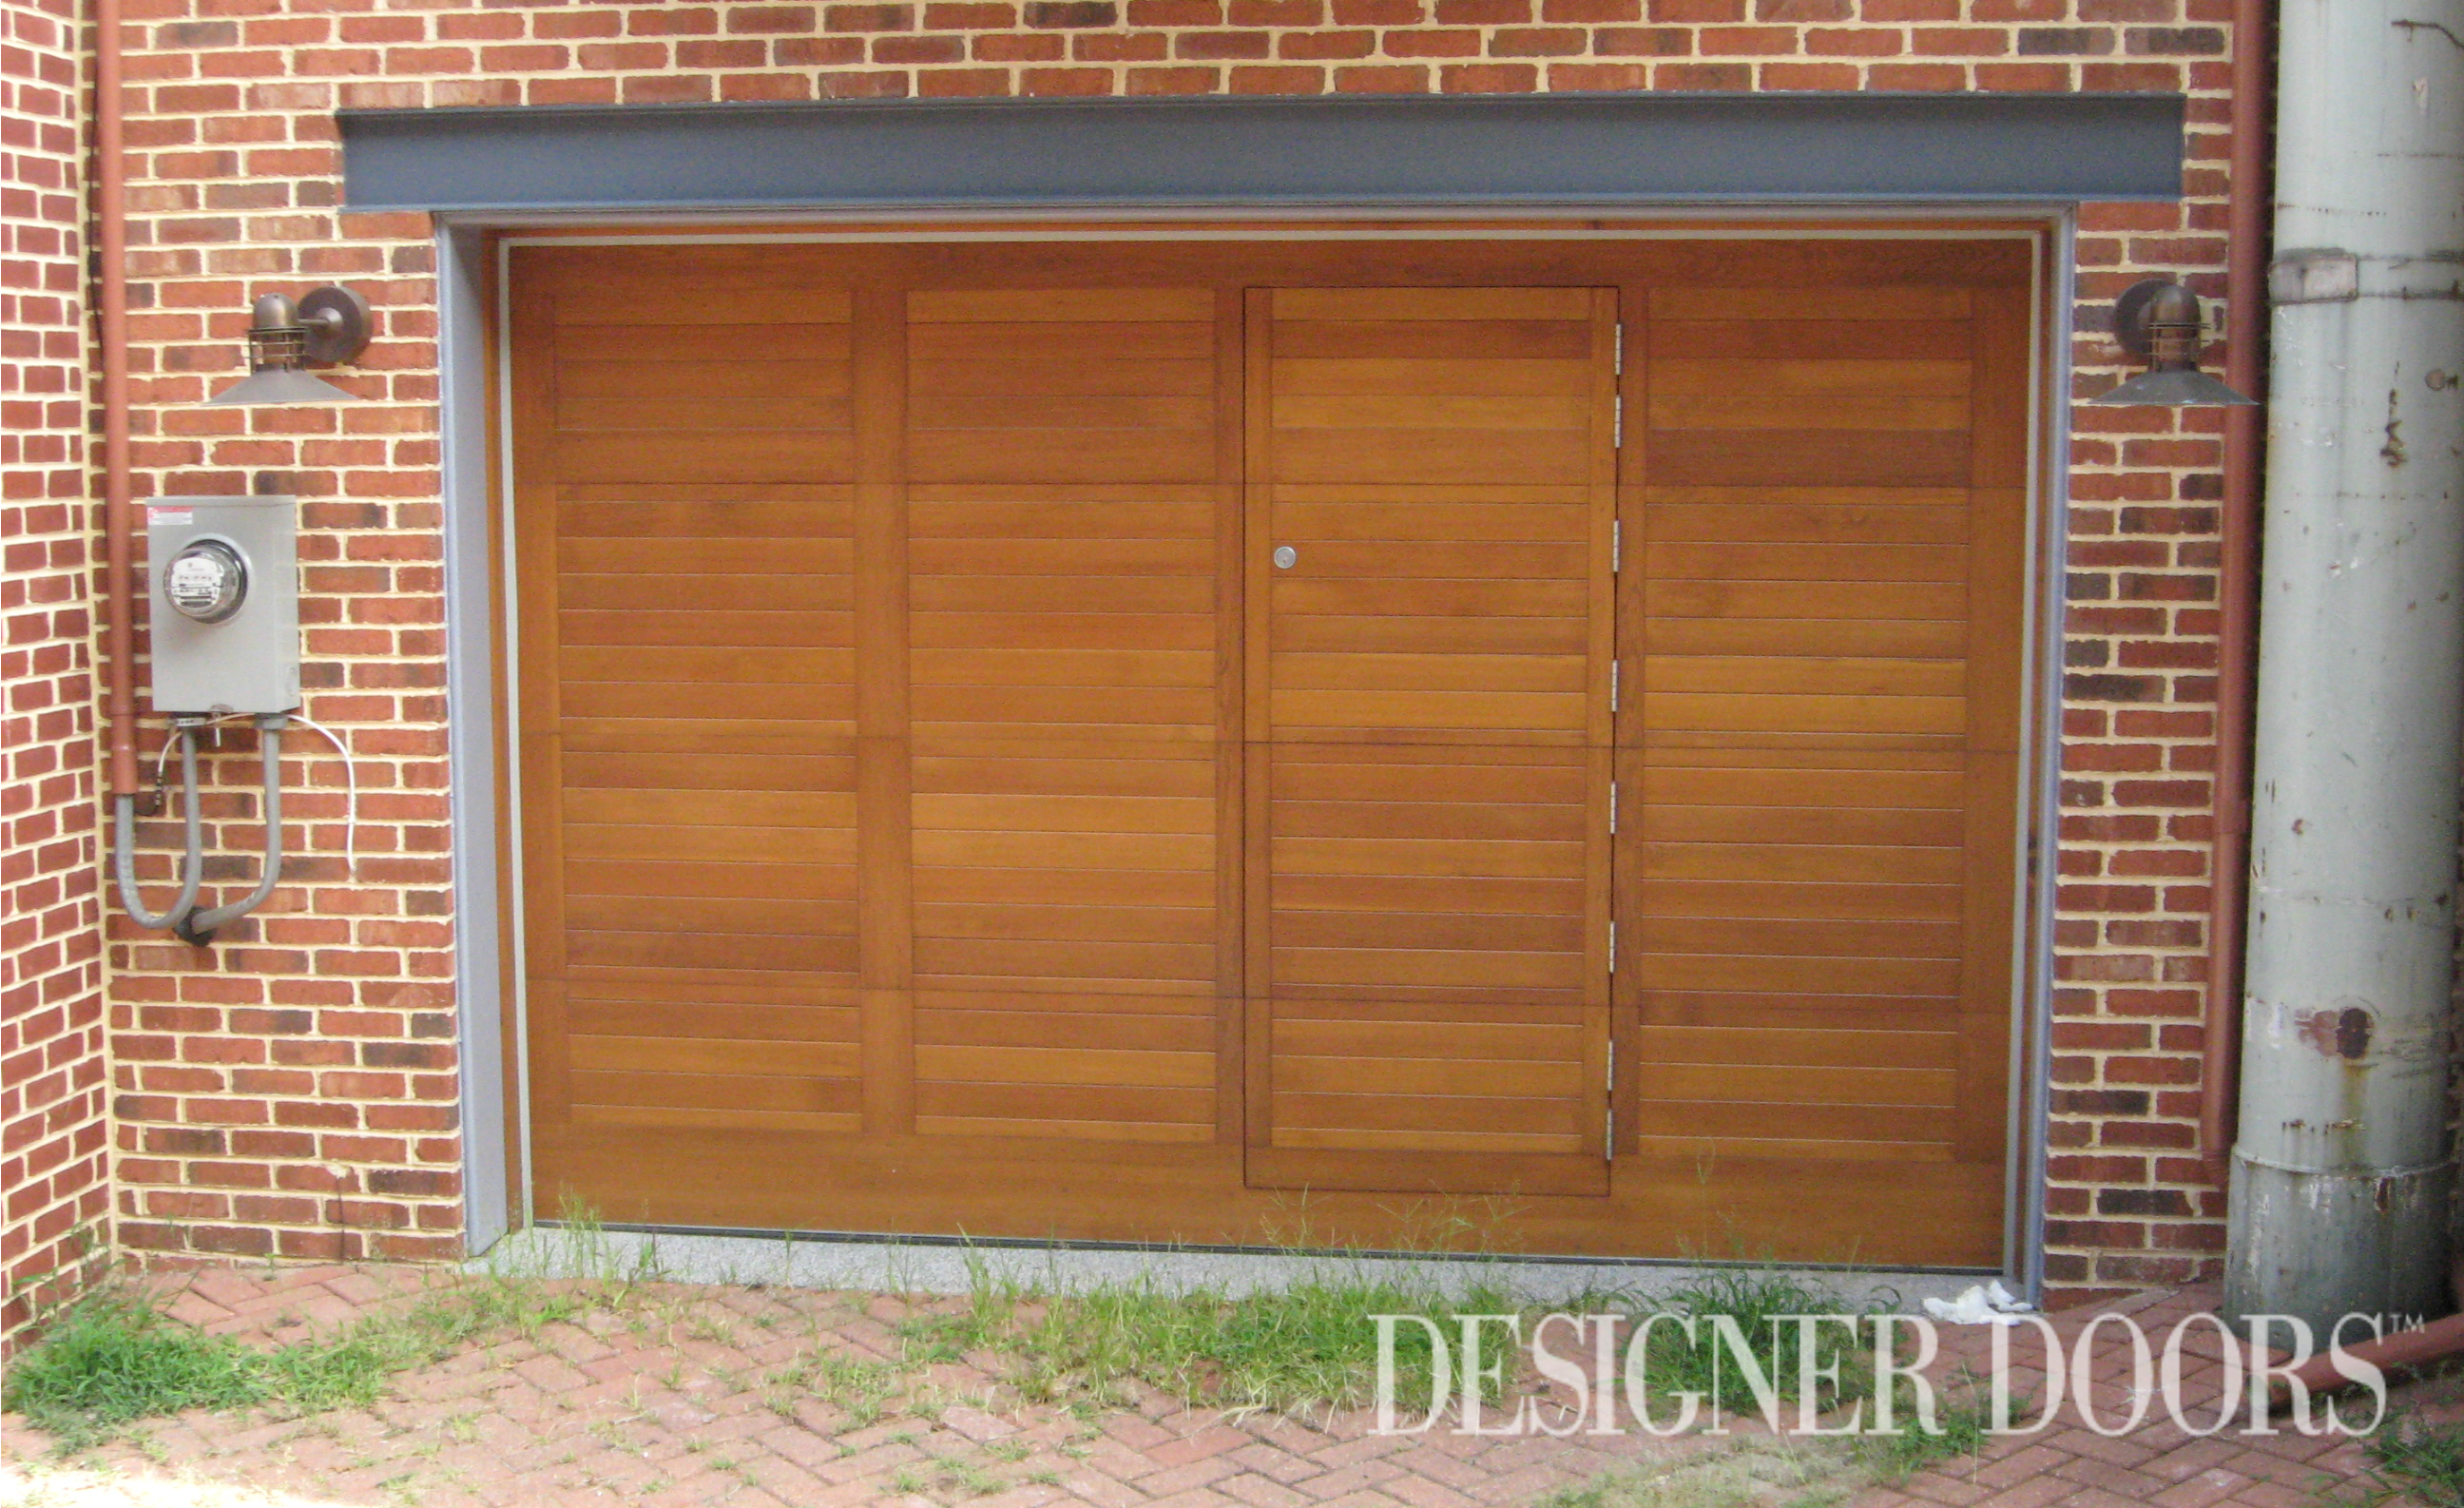 Federal Hill Wicket Door Door Design Overhead Door Garage Doors